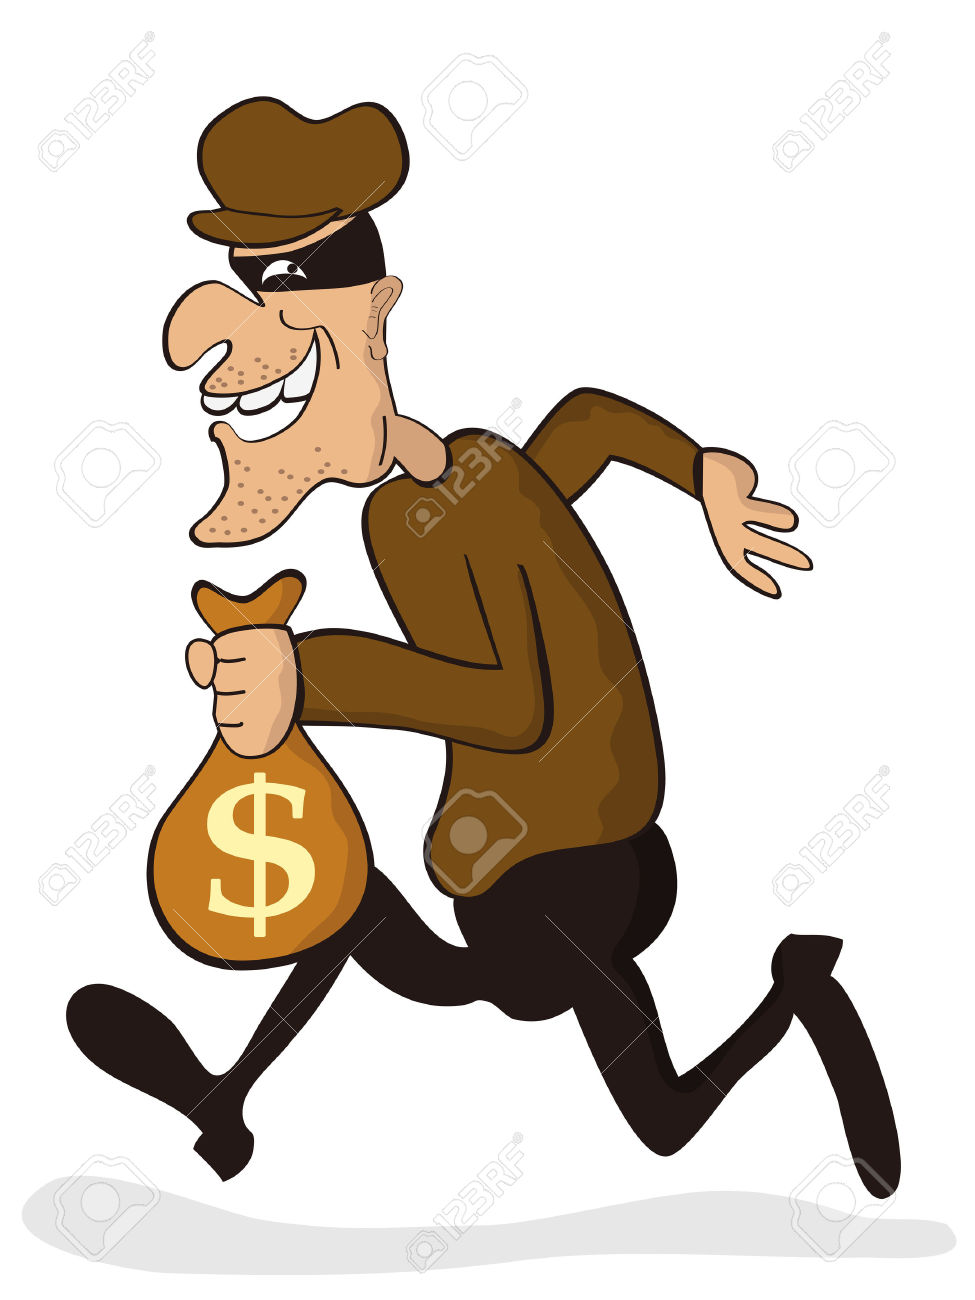 Robber background clipart image transparent stock Cartoon robber clipart - ClipartFest image transparent stock